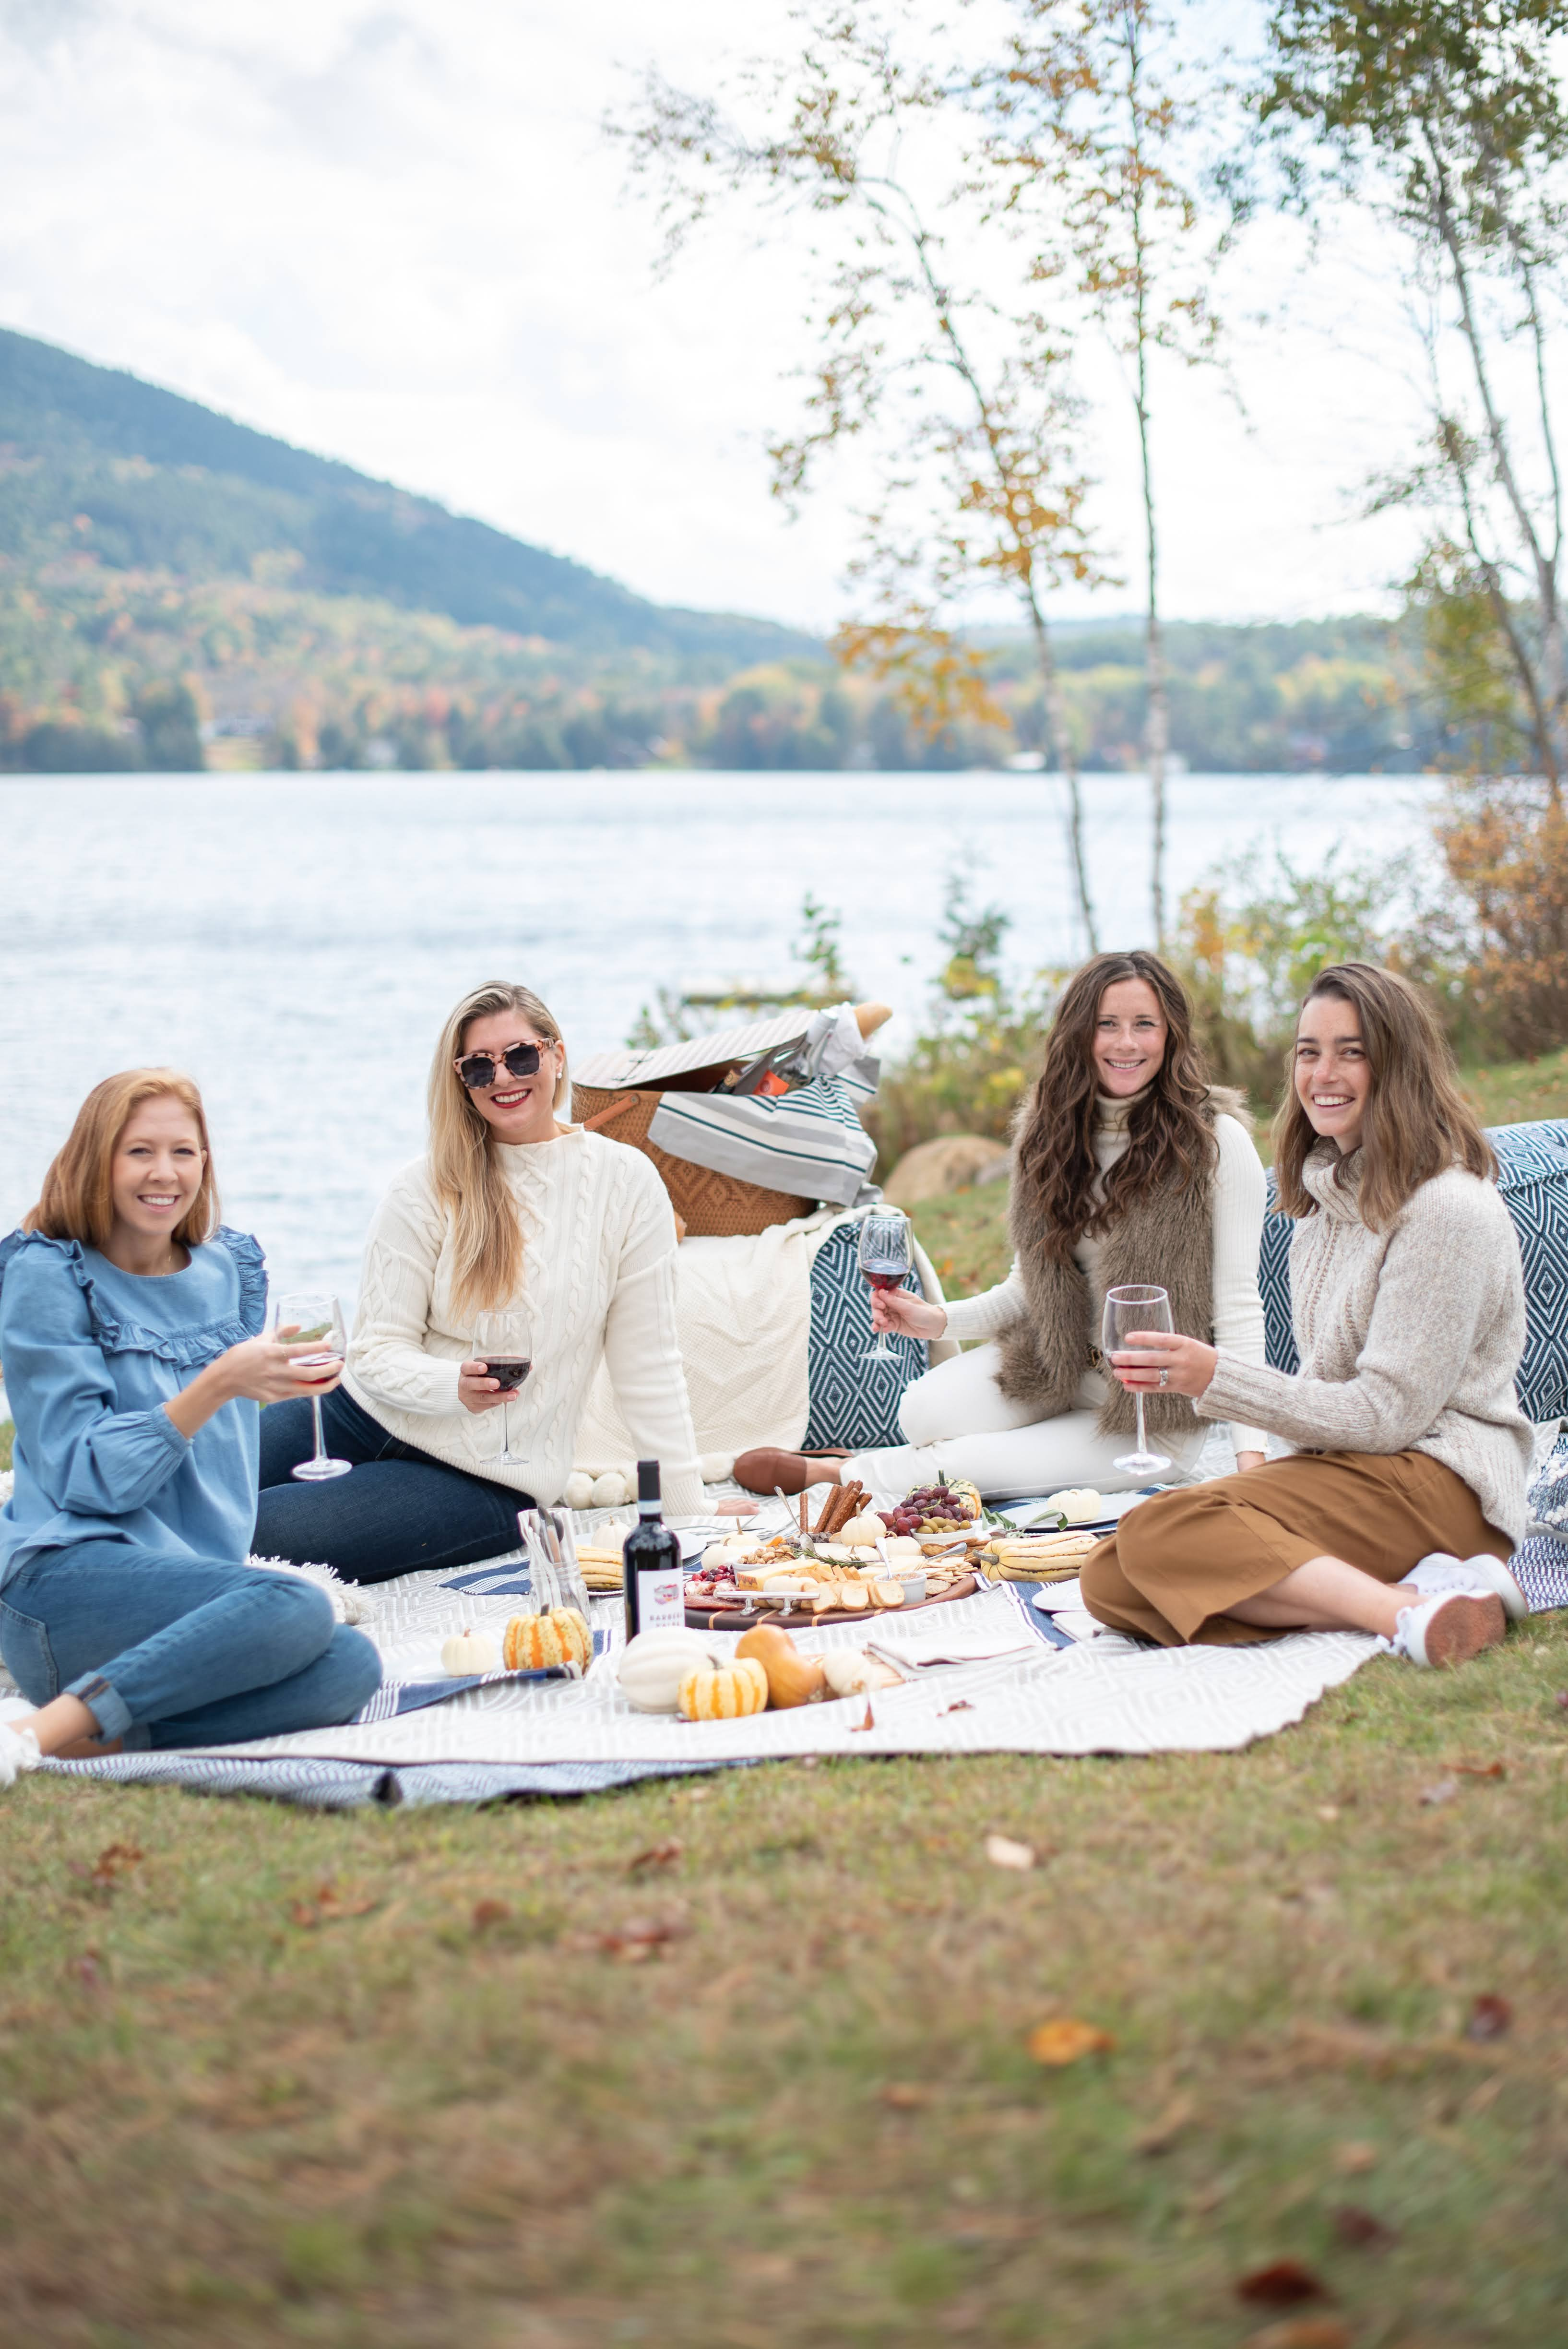 Embracing Autumn with a Lakeside Picnic